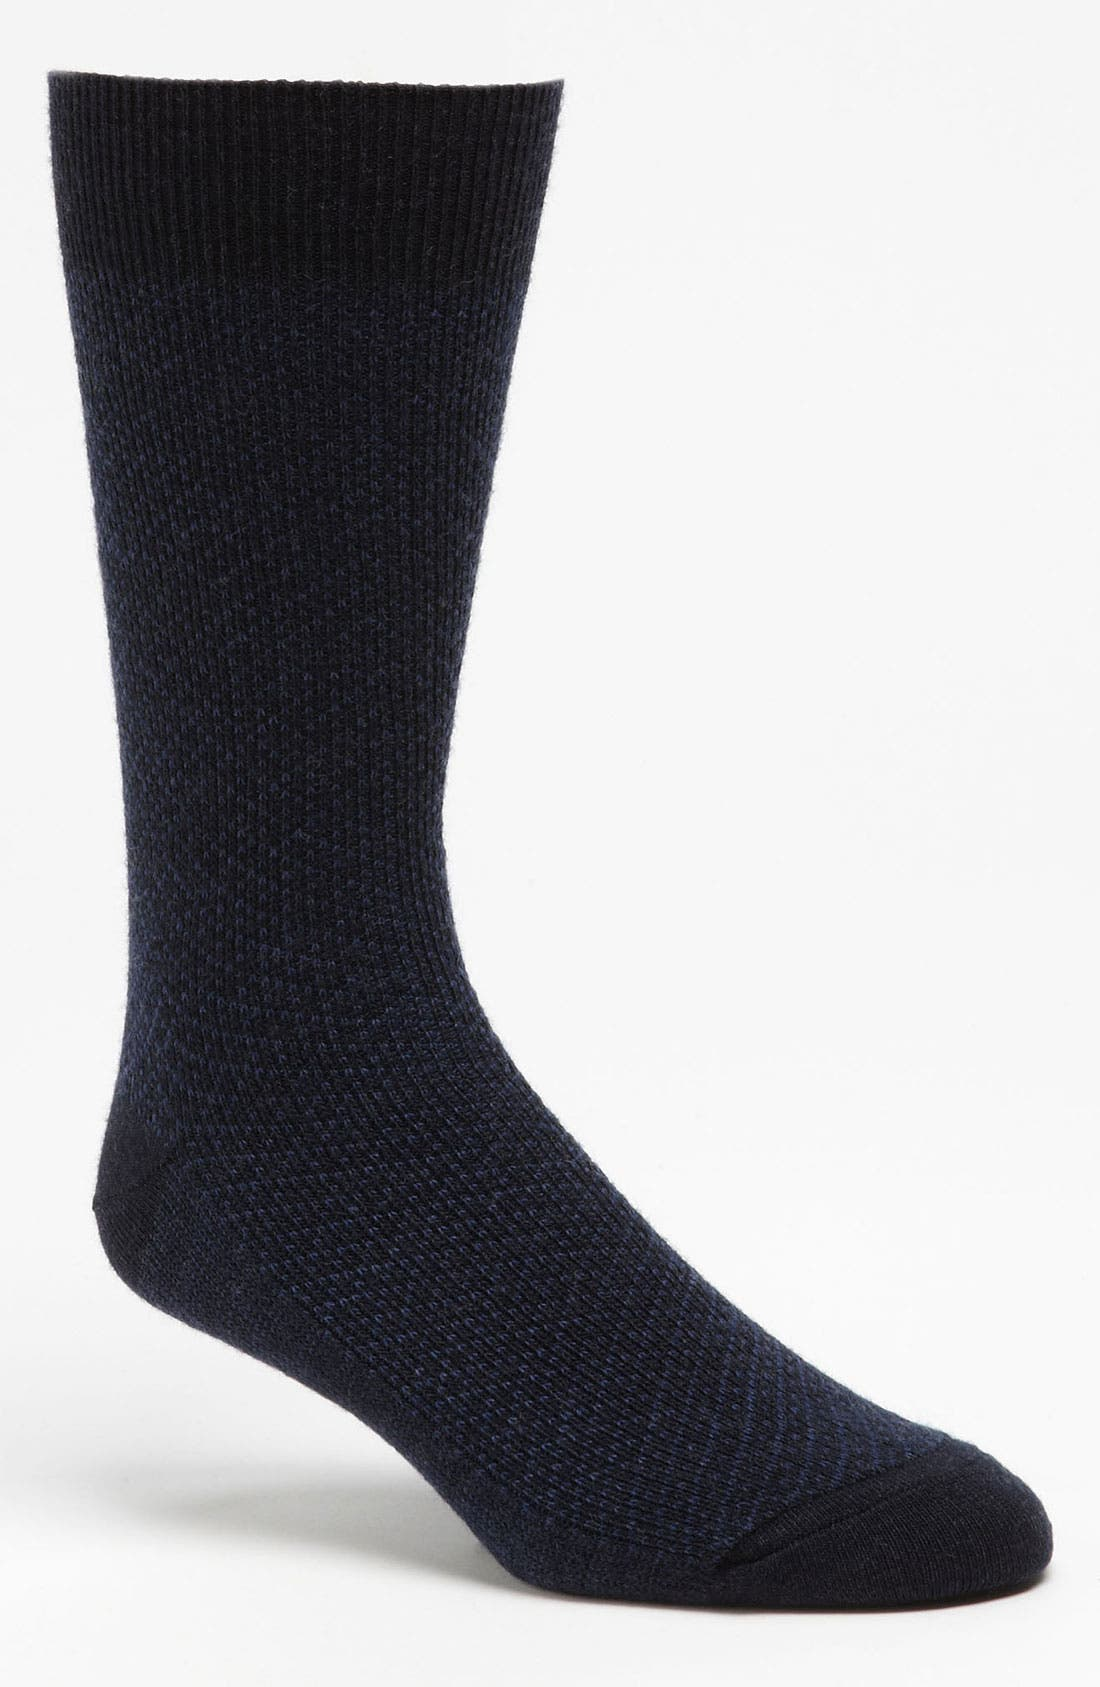 Alternate Image 1 Selected - David Donahue Wool Blend Socks